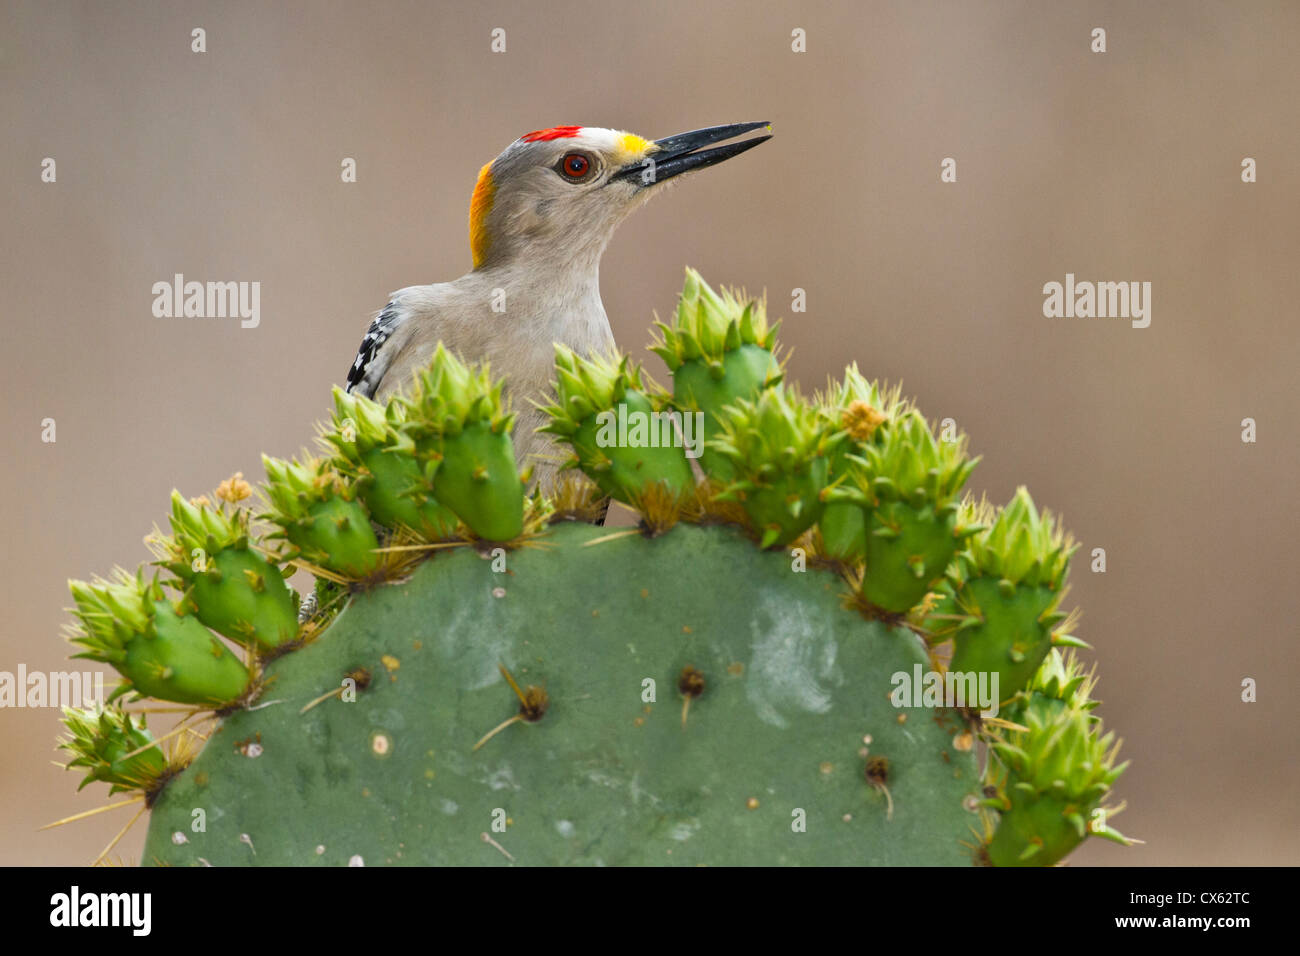 Golden-fronted Woodpecker (Melanerpes aurifrons) adult male perched on prickly pear cactus Stock Photo